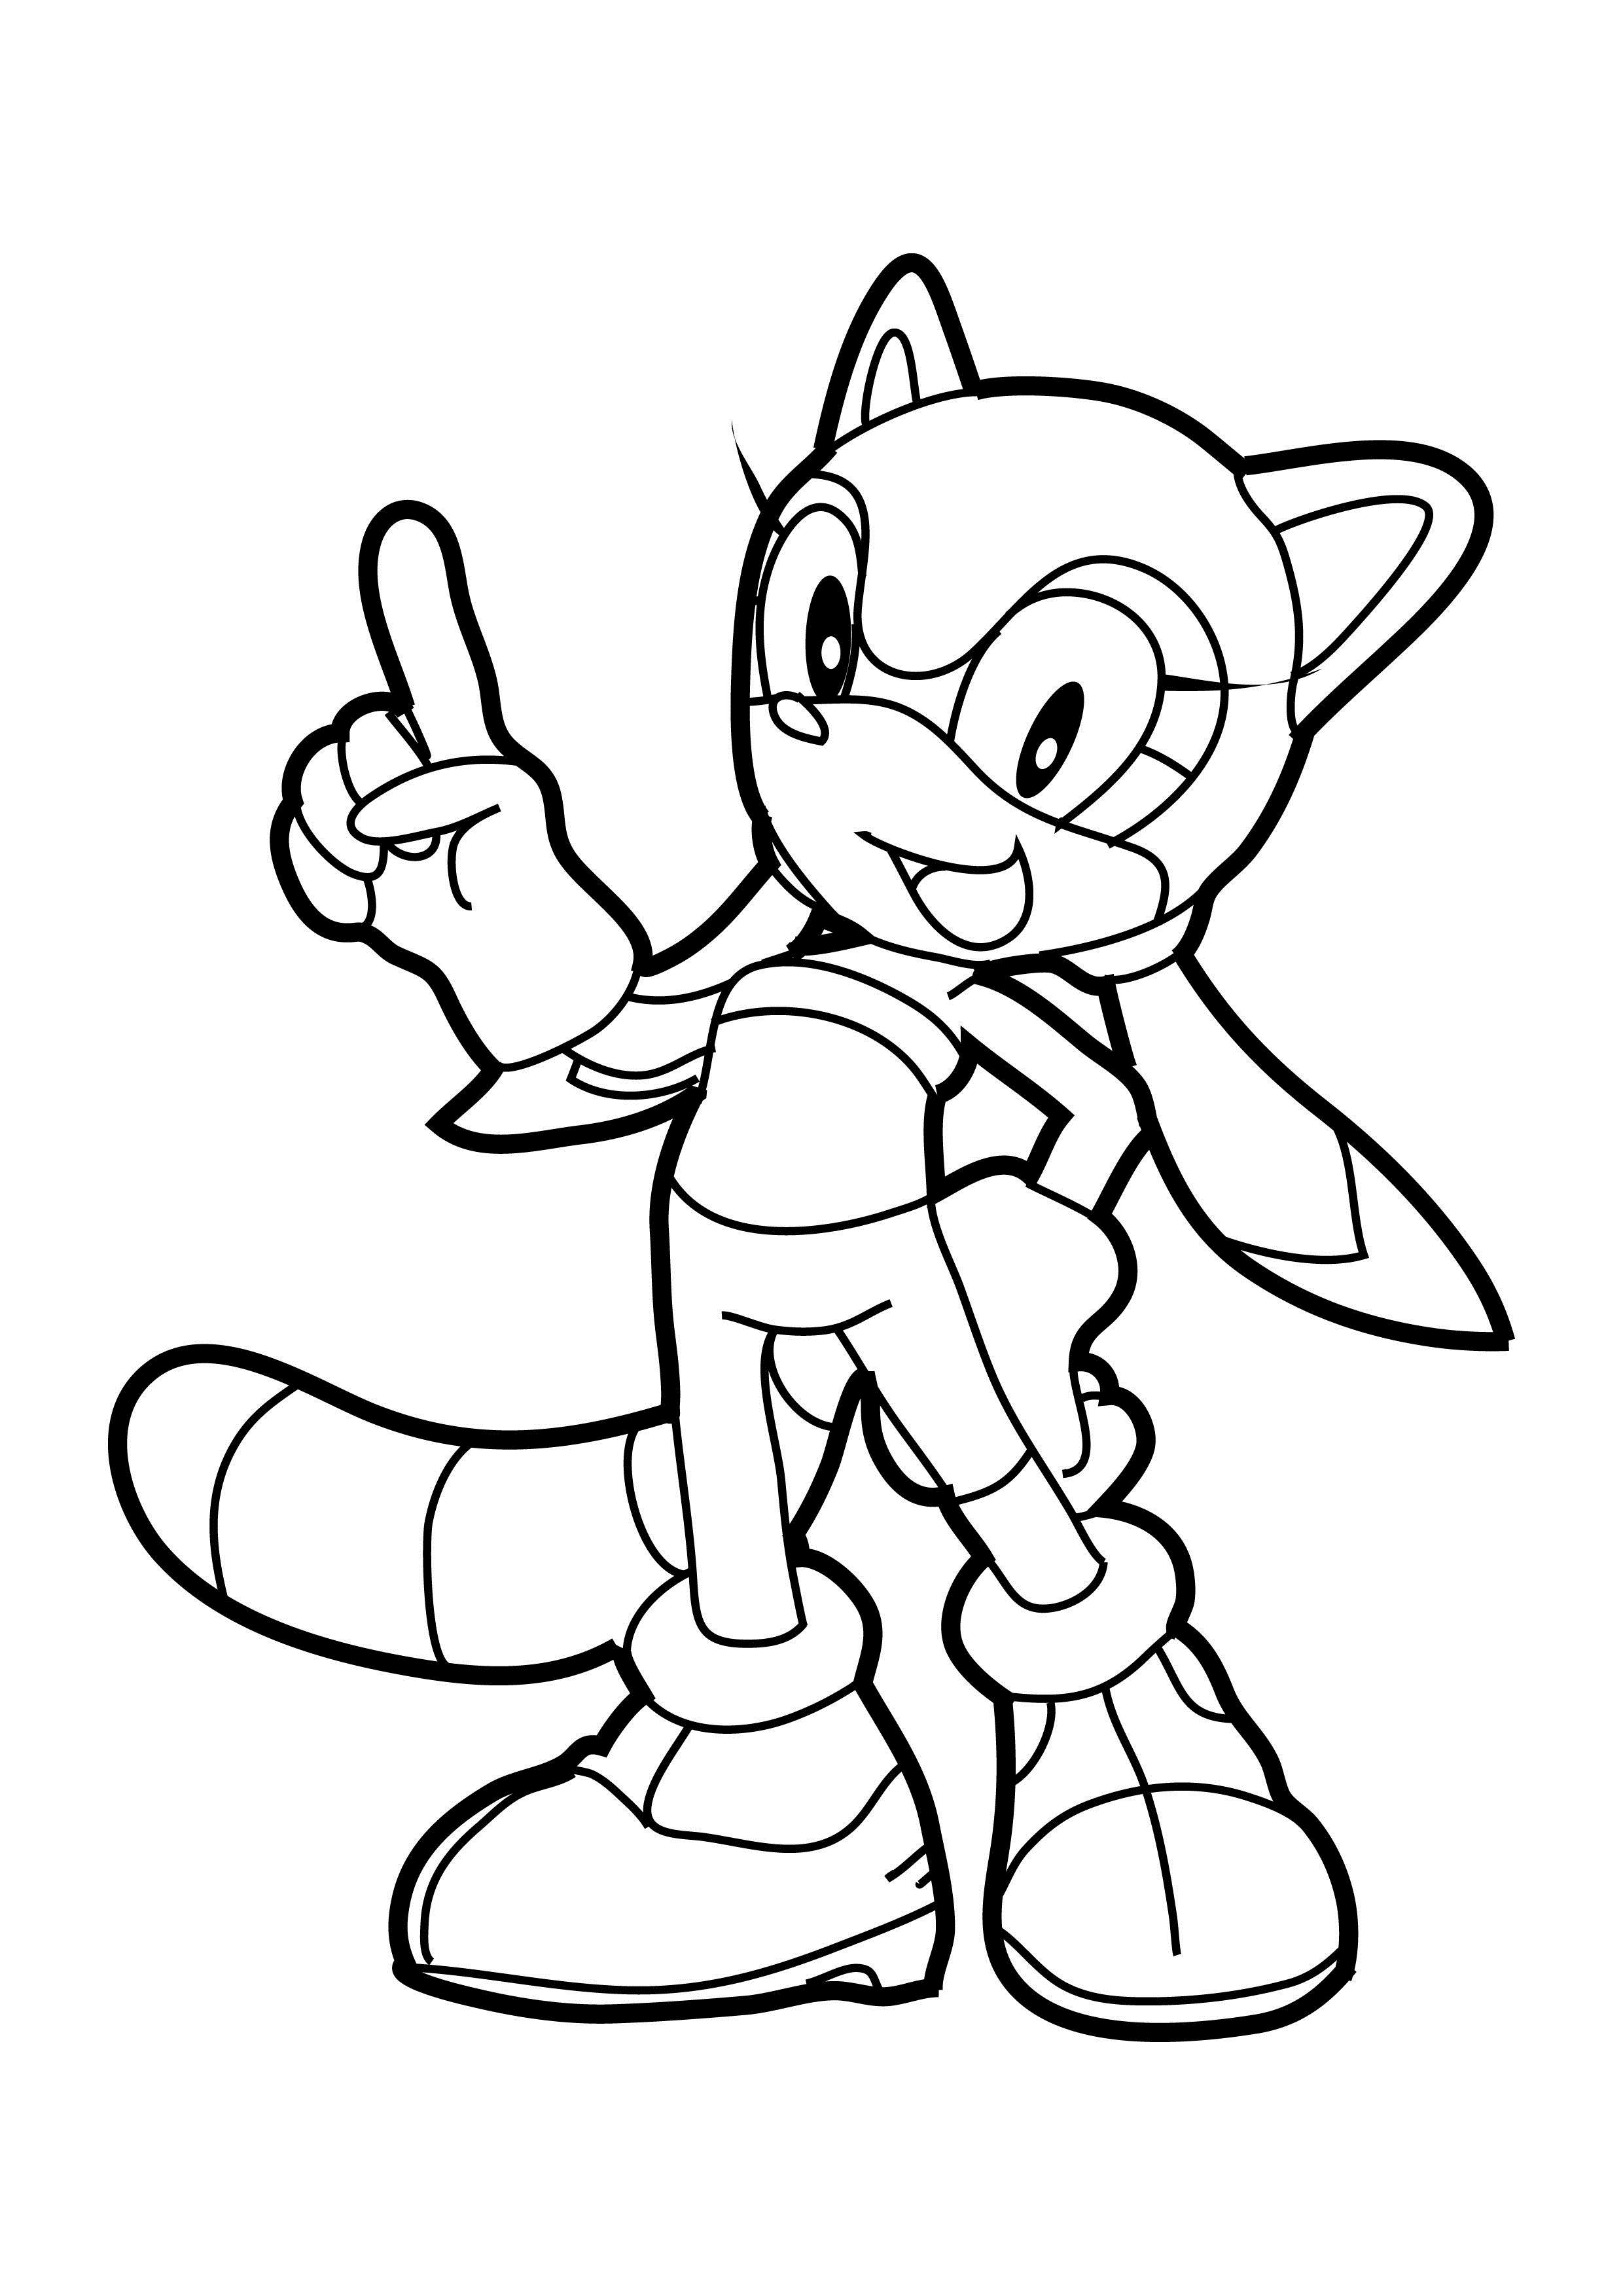 sonic the hedgehog printables printable sonic coloring pages for kids cool2bkids sonic the printables hedgehog